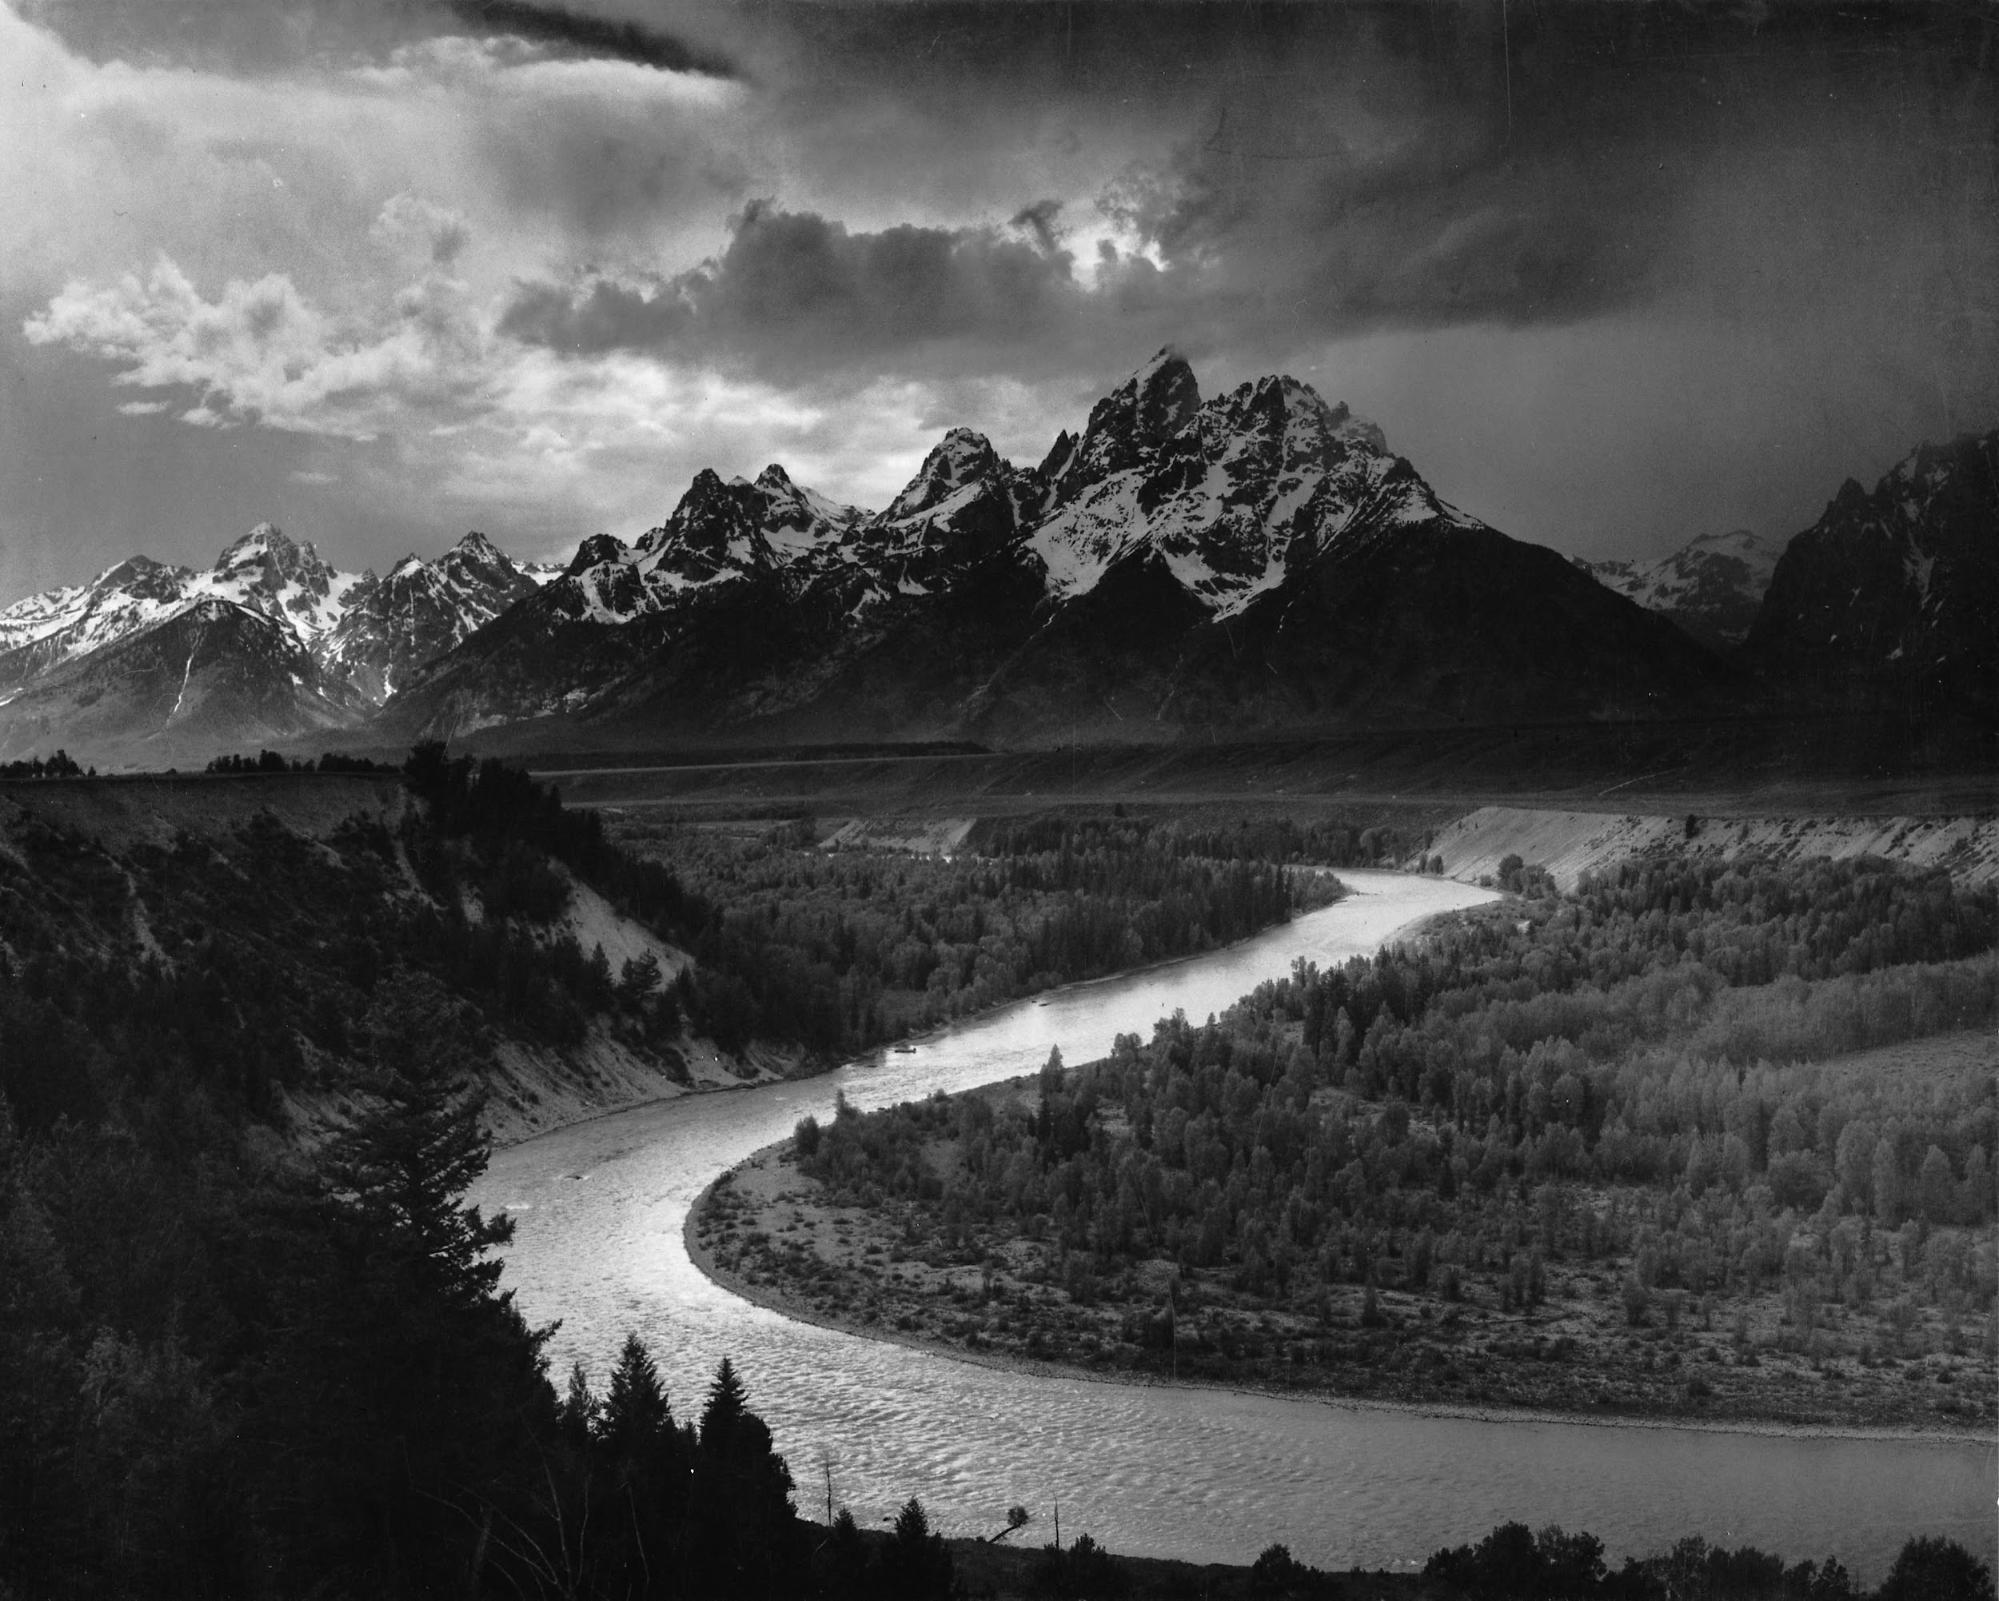 History of Landscape Photography The Tetons and the Snake River Wyoming 1942 by Ansel Adams